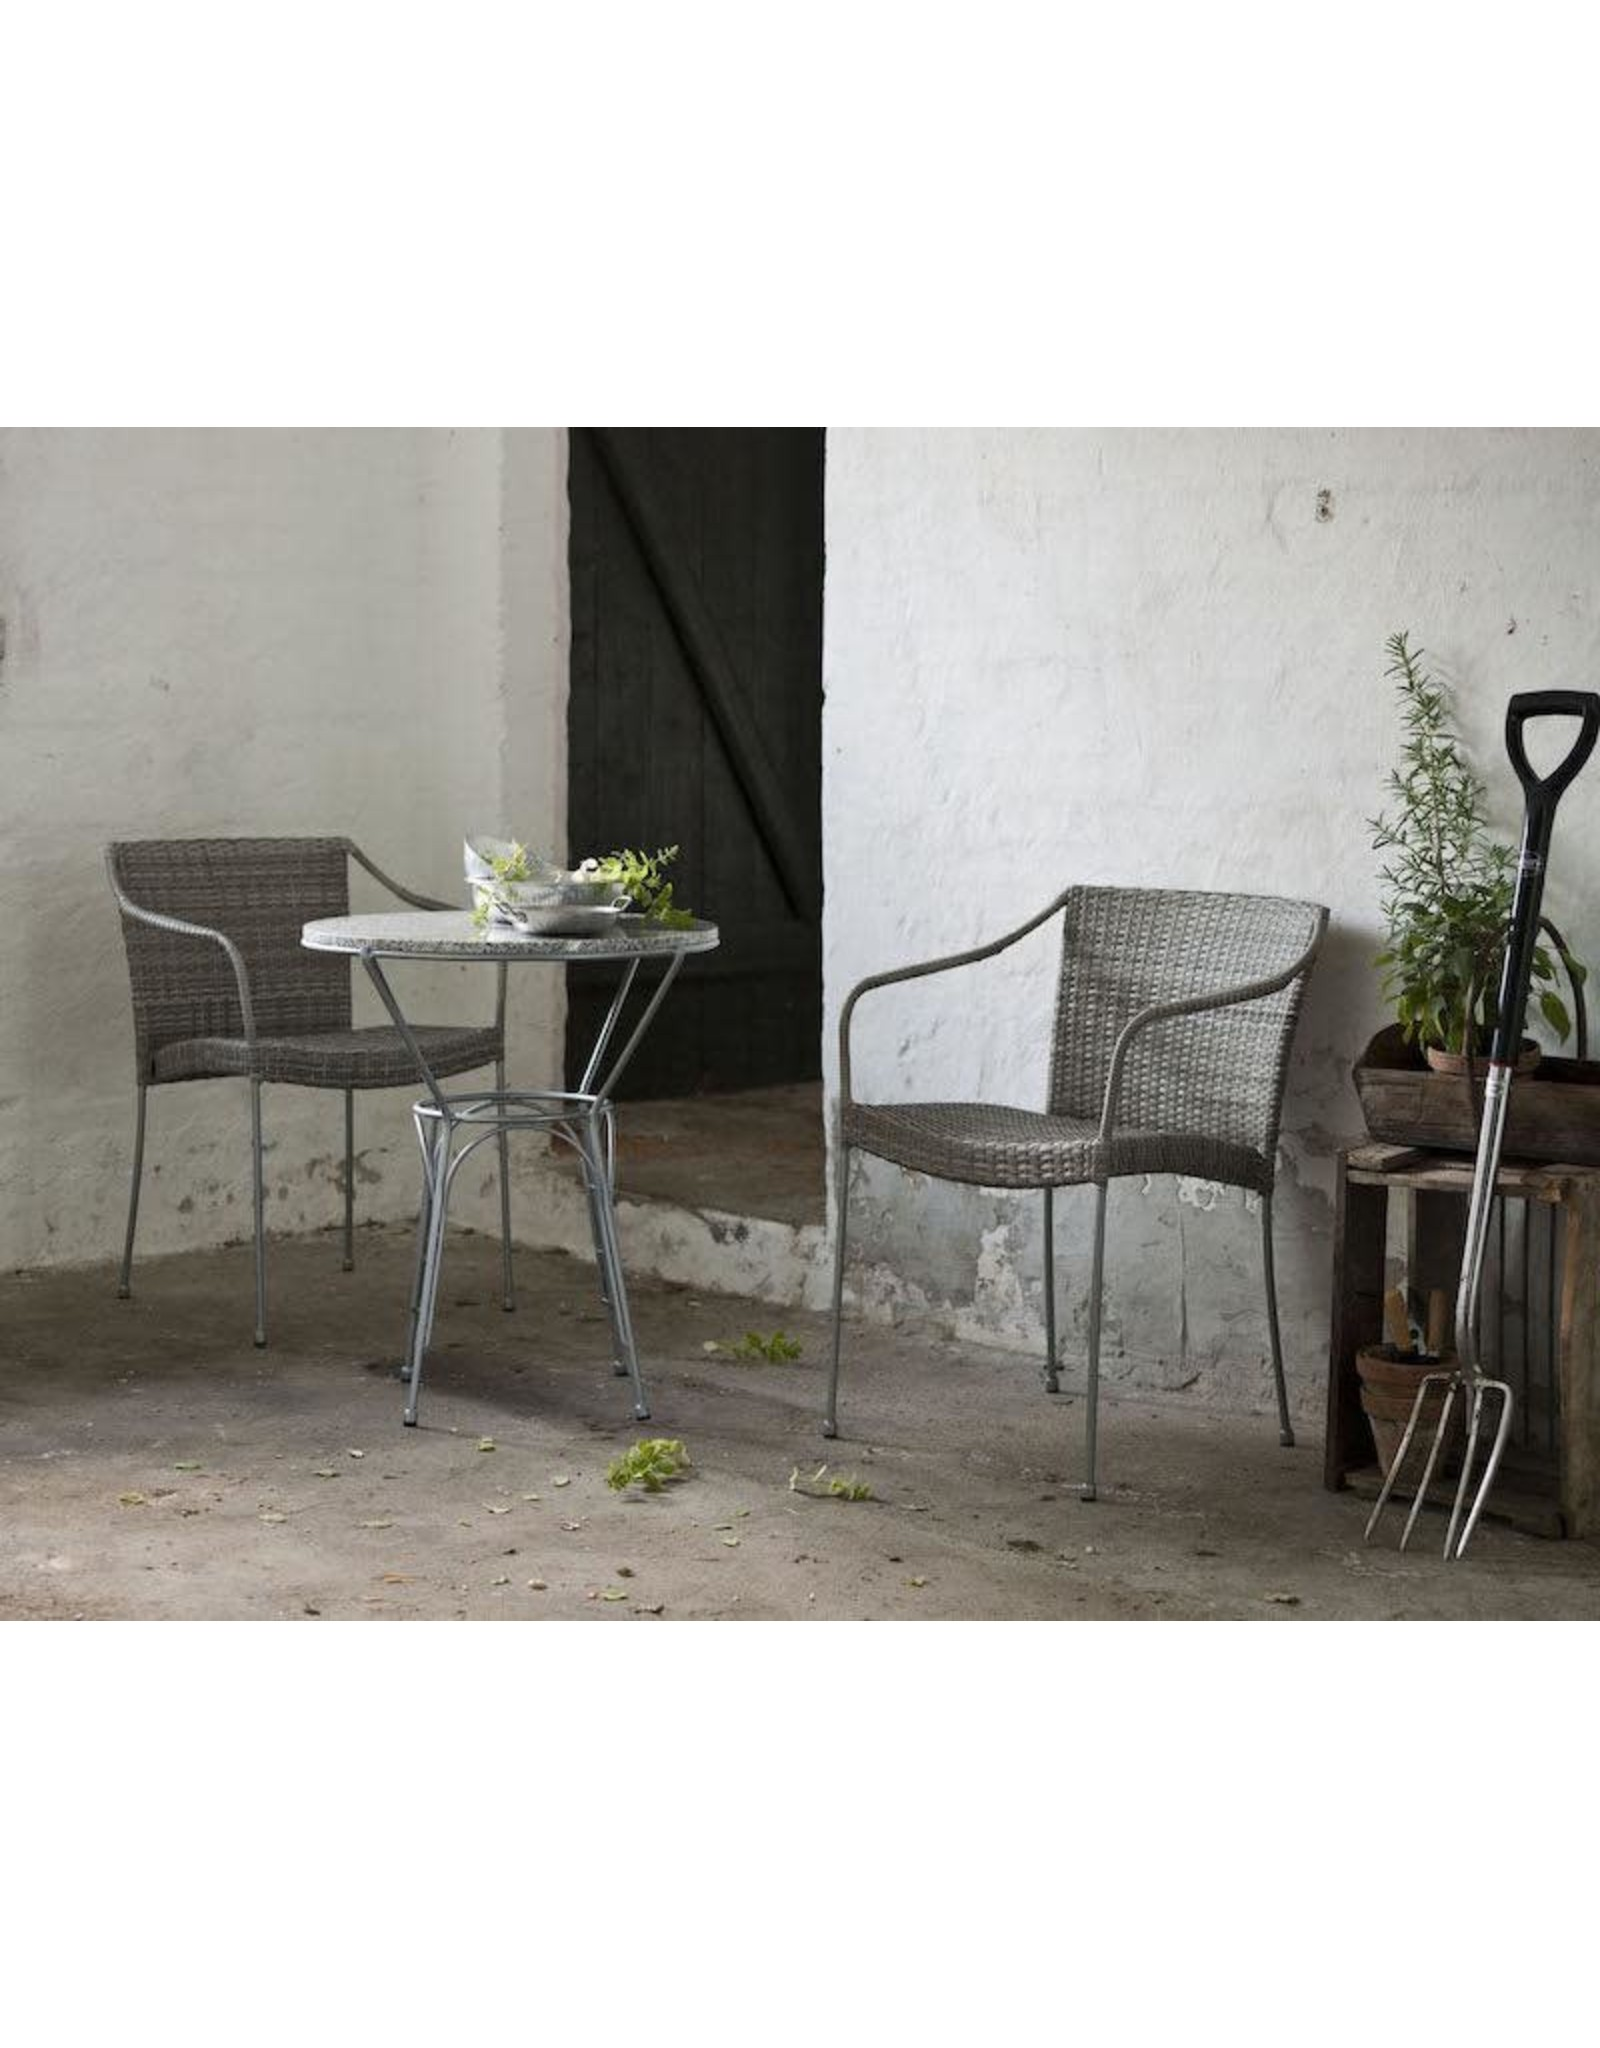 SIKA DESIGN 9160T PLUTO OUTDOOR STACKABLE ARMCHAIR